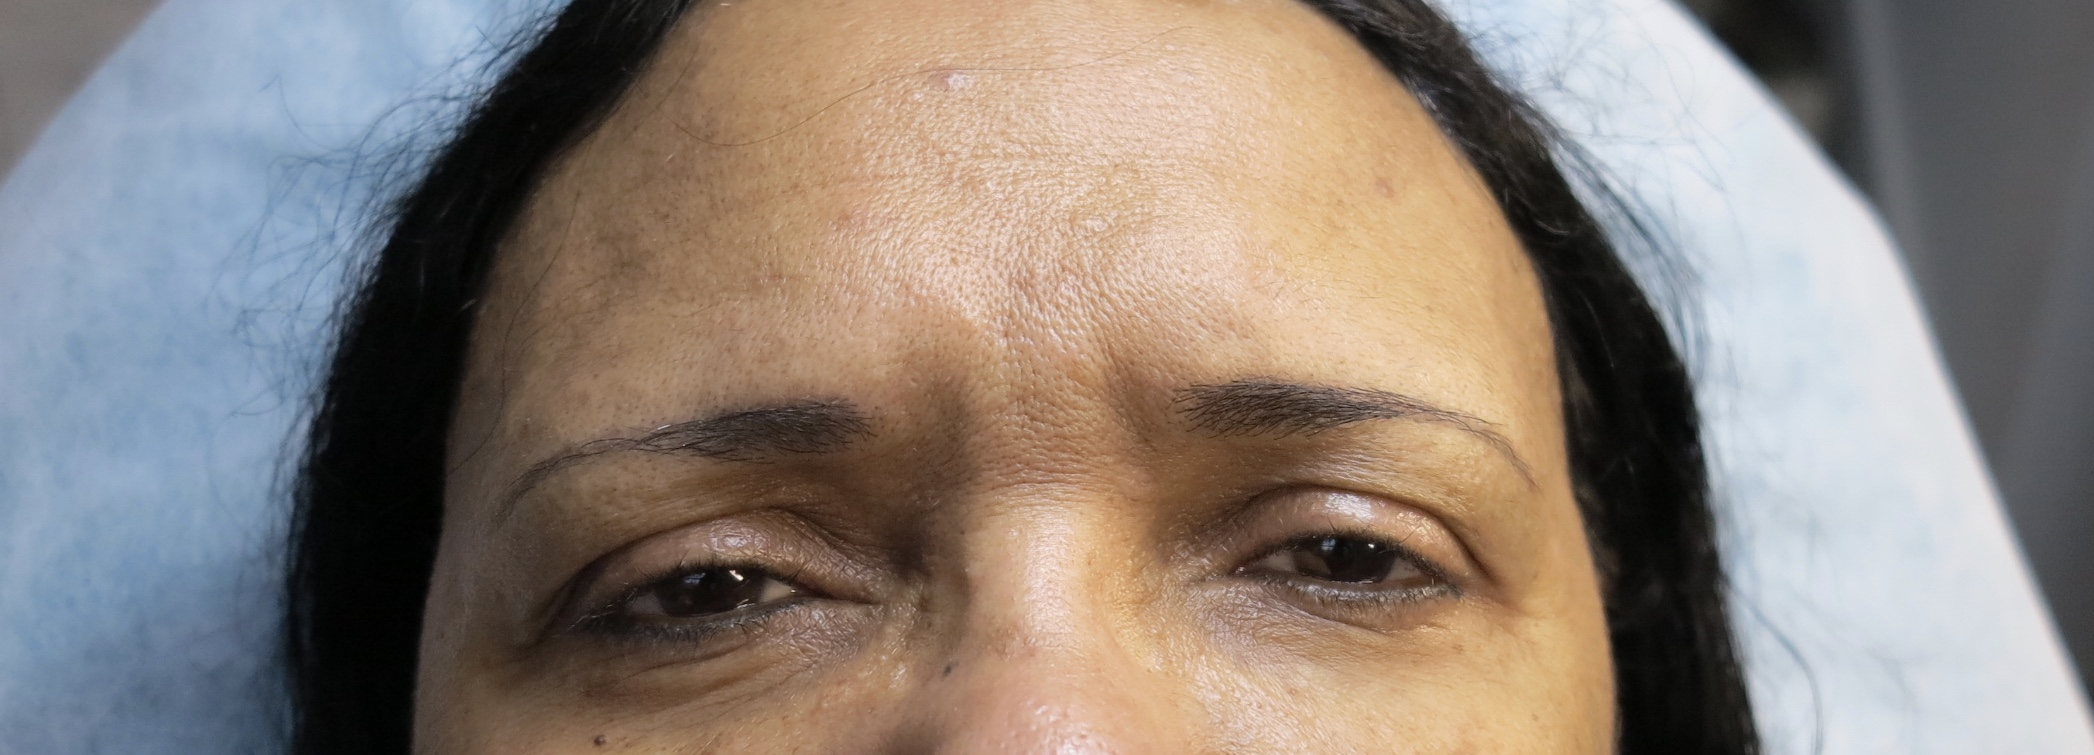 How To Find The Best Place To Get Your Eyebrows Permanent Make Up In